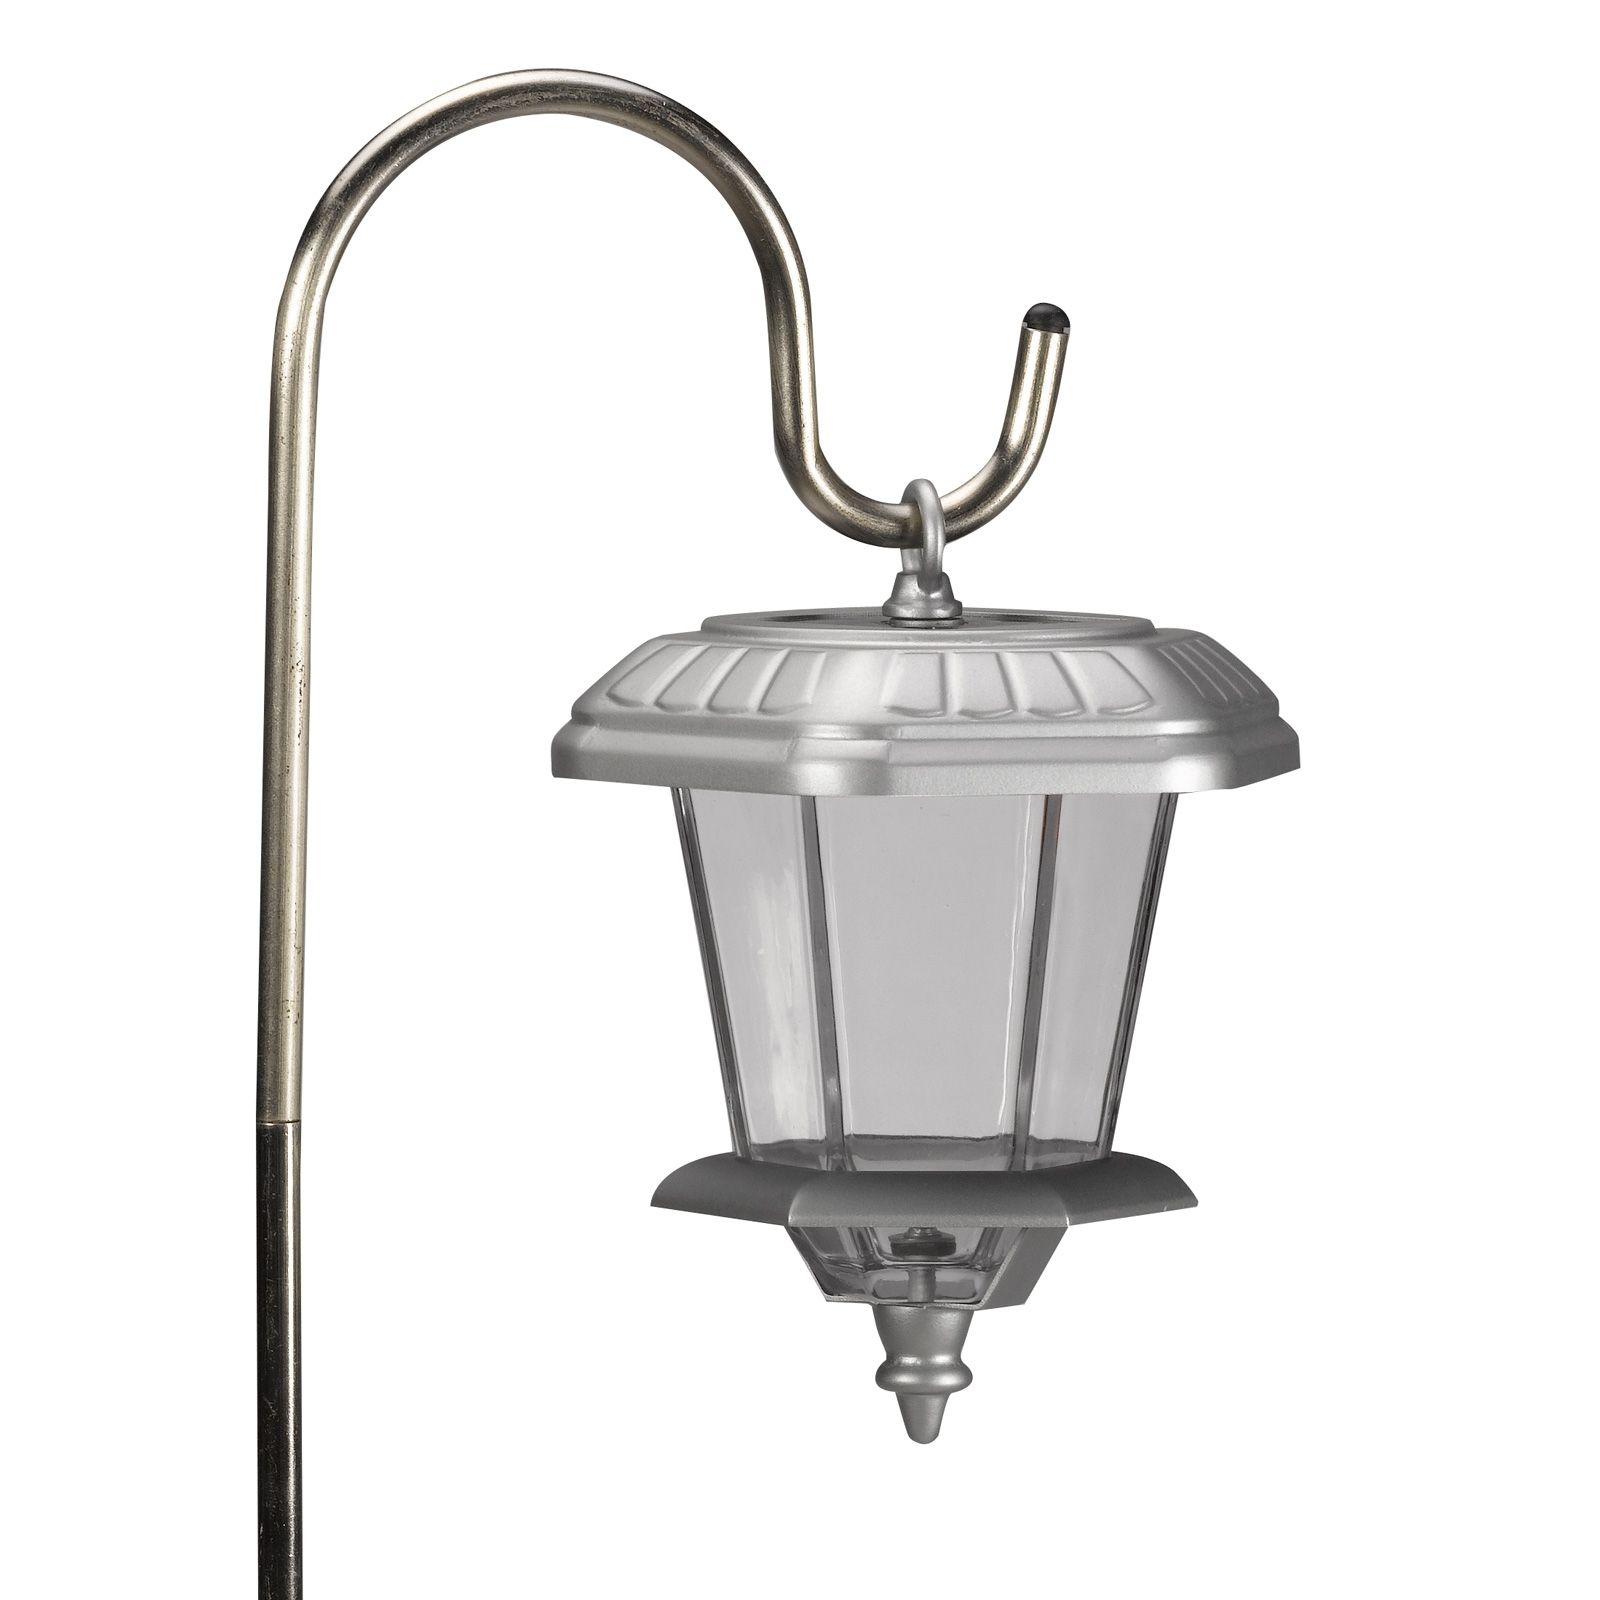 Hansom Stainless Steel Carriage Light